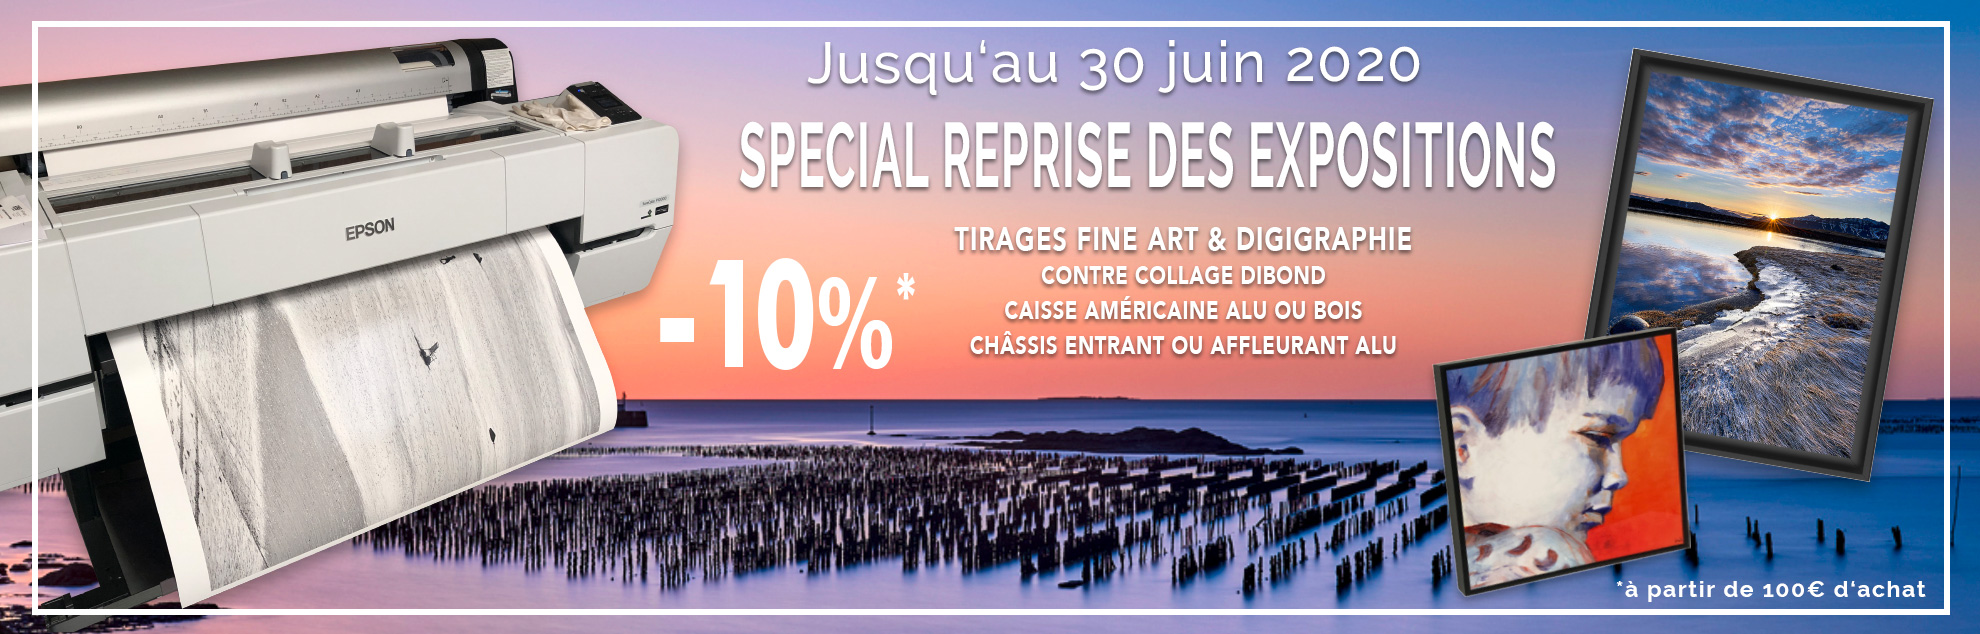 tirage photo Fine Art professionnel et impression photo d'art Loire Atlantique 44